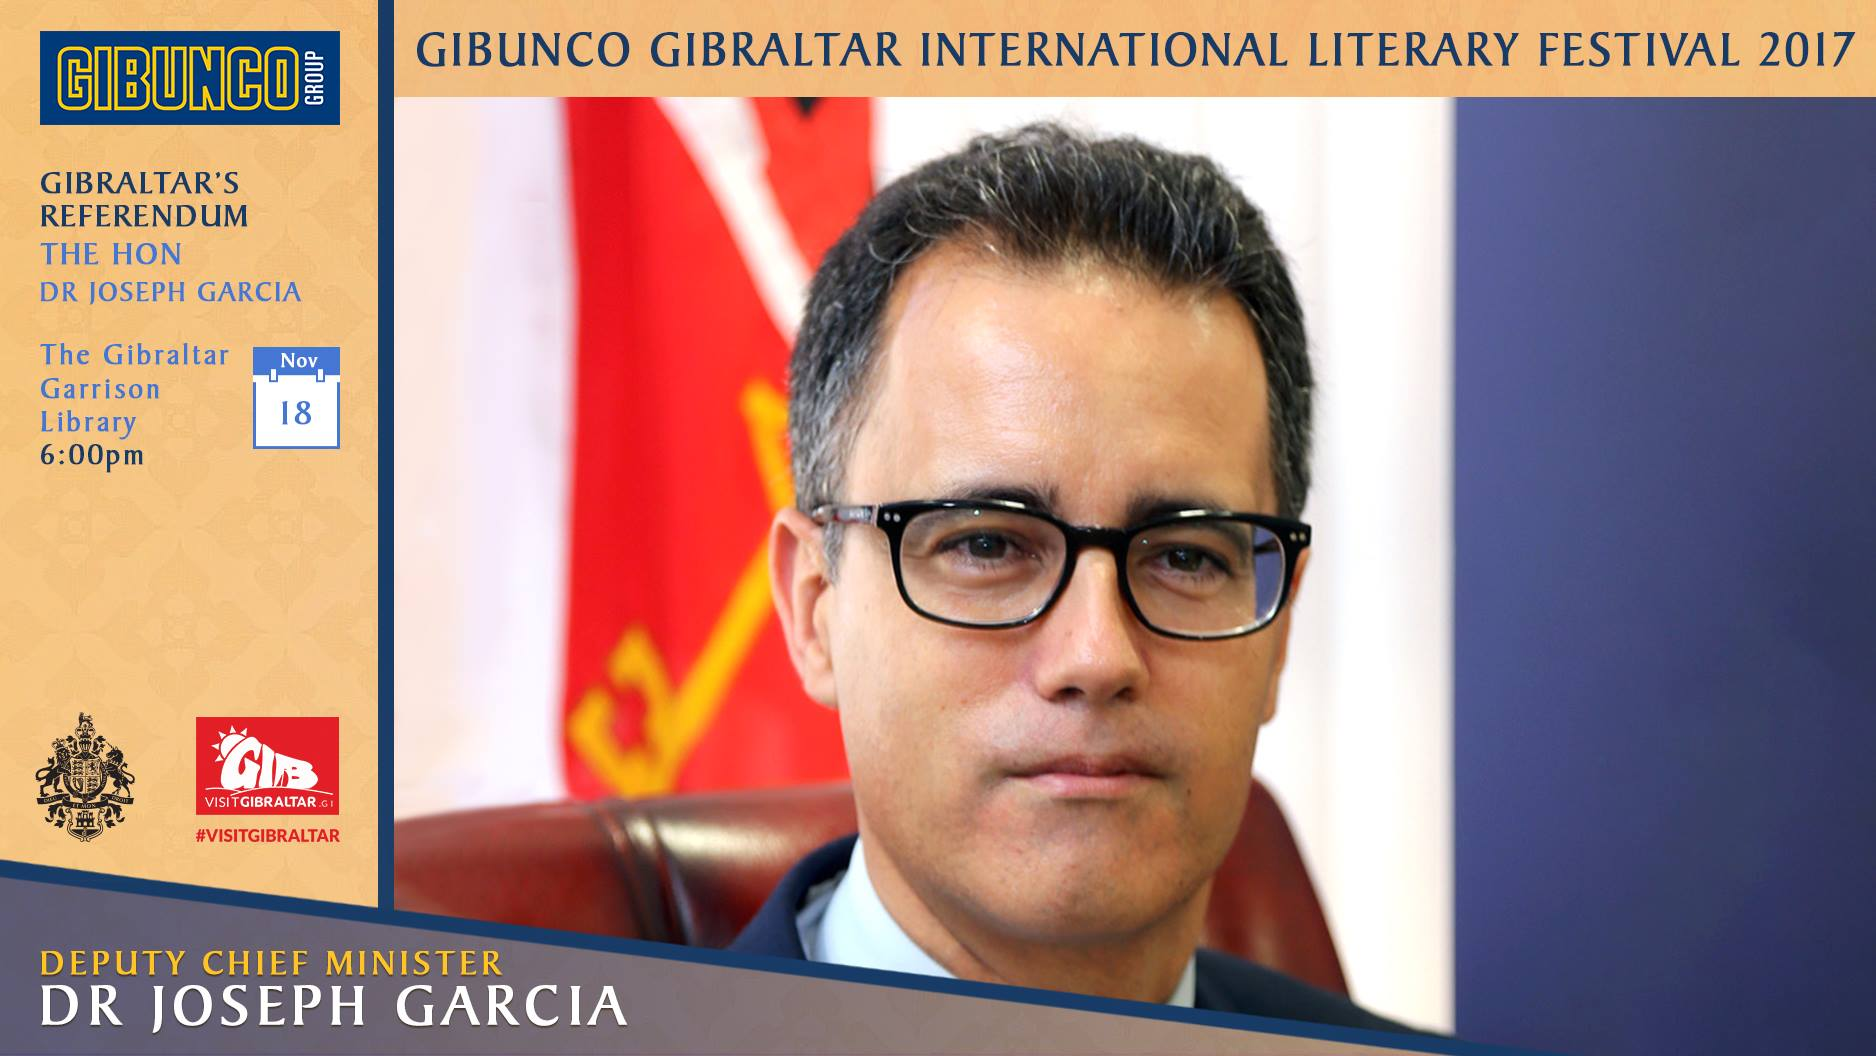 Dr Joseph Garcia to speak about the Referendum at Literary Festival  Image